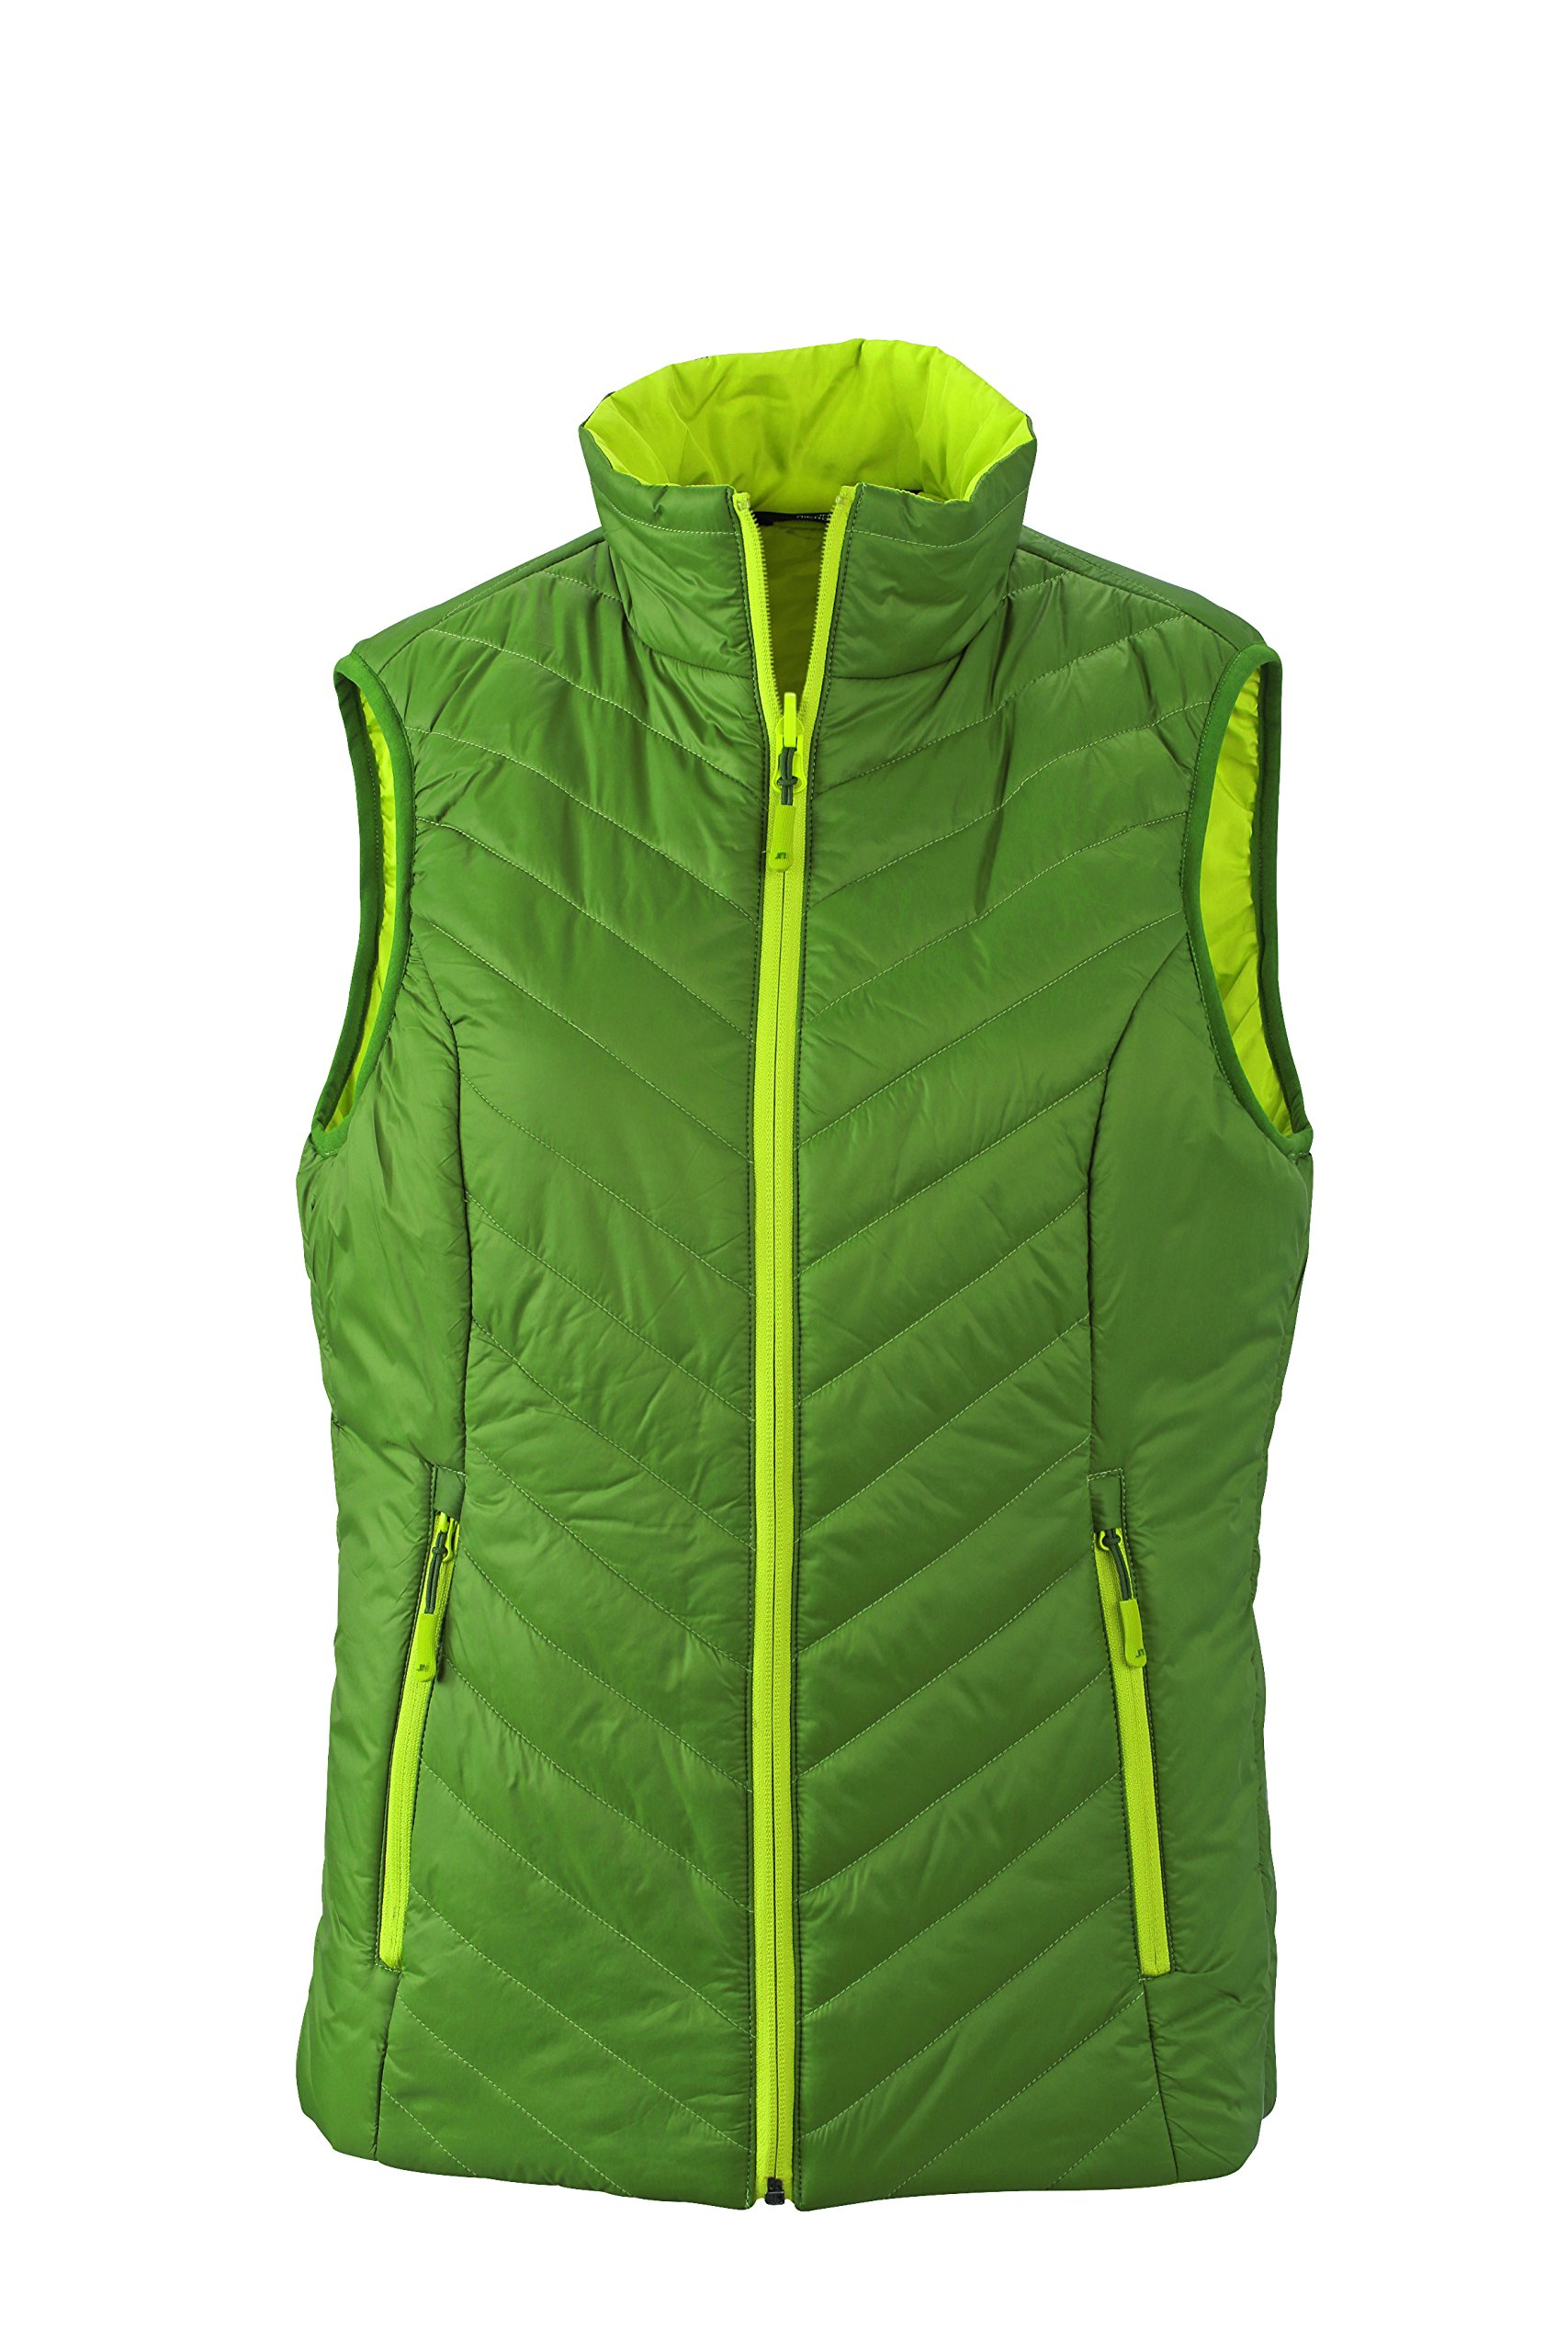 81TutbFBl3L - James & Nicholson Women's Lightweight Vest Outdoor